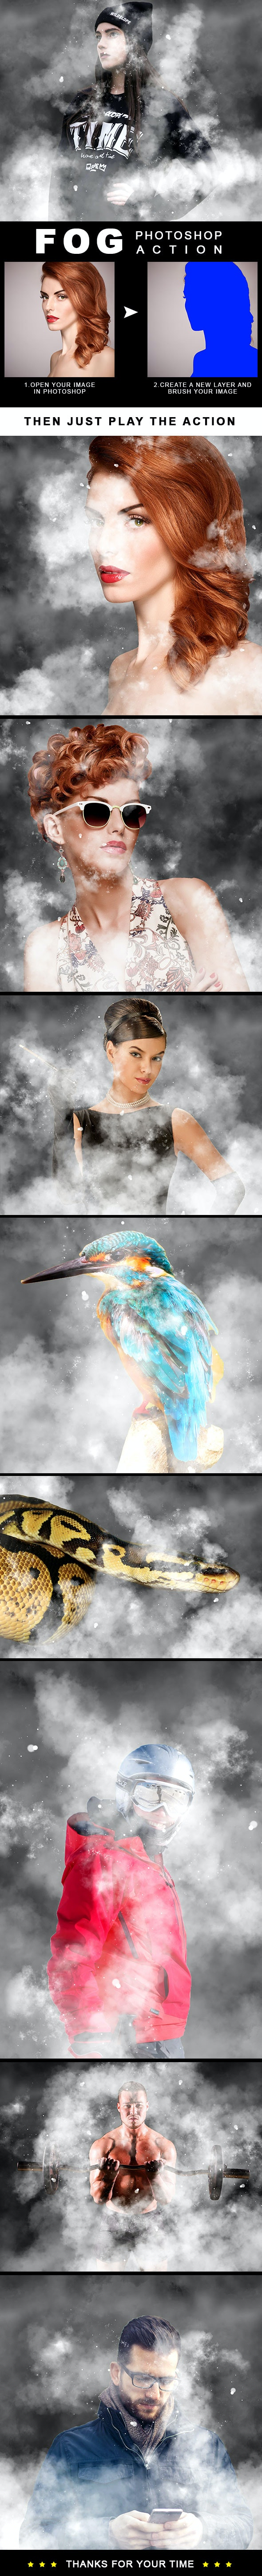 Fog Effect Photoshop Action - Photo Effects Actions